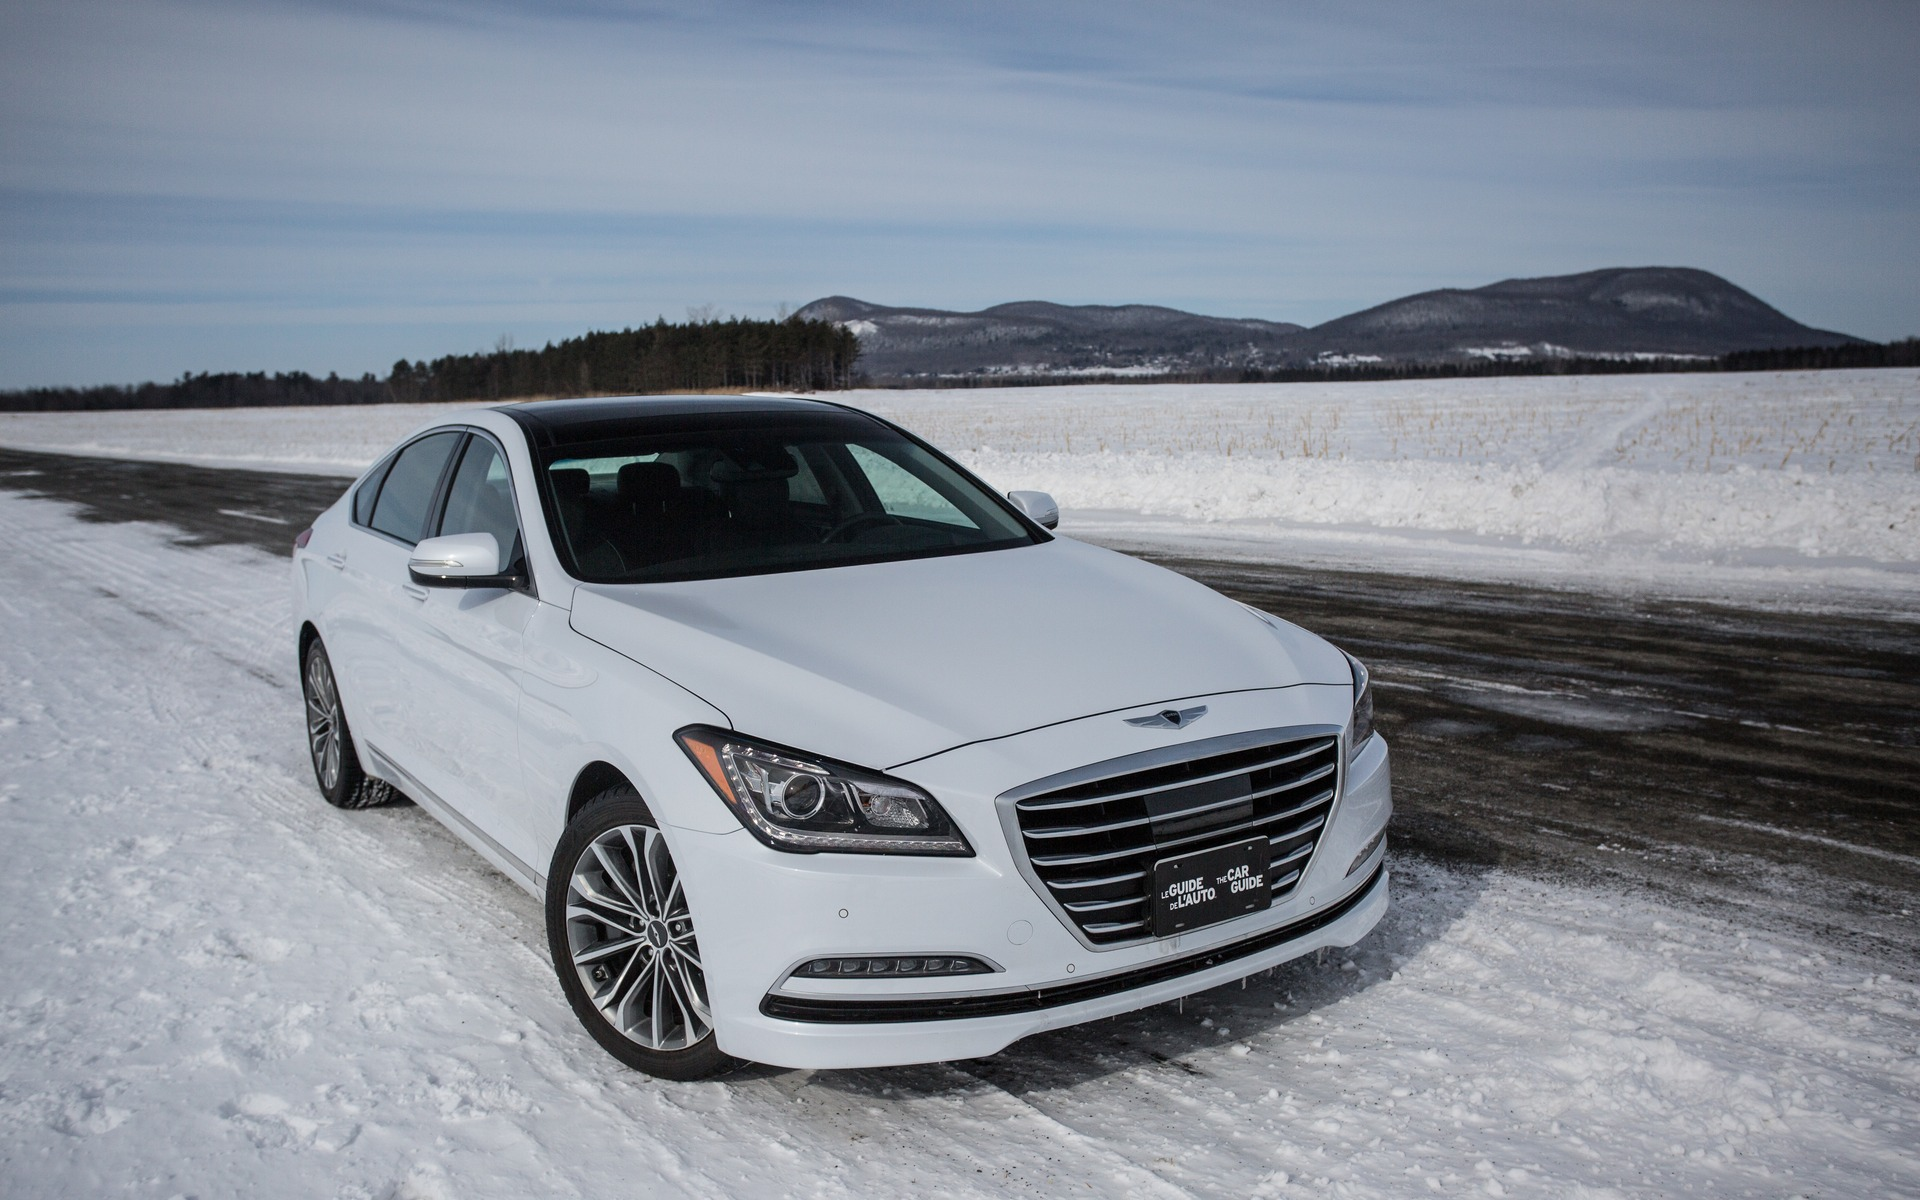 2016 Hyundai Genesis Photos 1 3 The Car Guide